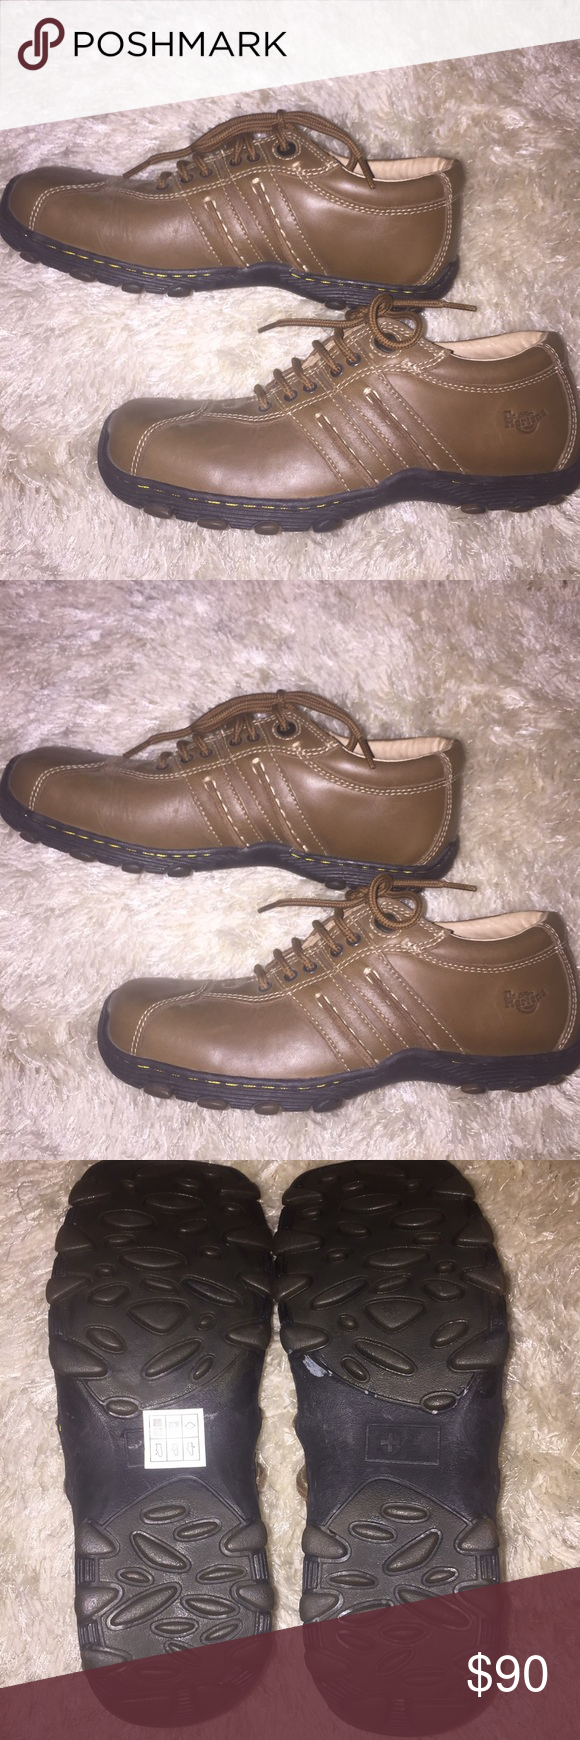 Brand New Dr. Martens Men's Shoes Brand New Doc Martens Men's Brown Colored Shoes. US Size 6 or UK Size 5 Men's. Never worn! Perfect condition! The only minor flaw is the Dr Marten label inside the shoe was a bit scratched off from the sizing sticker it came with but other than that it's in mint condition(shown in last photo).  👌🏼 Dr. Martens Shoes